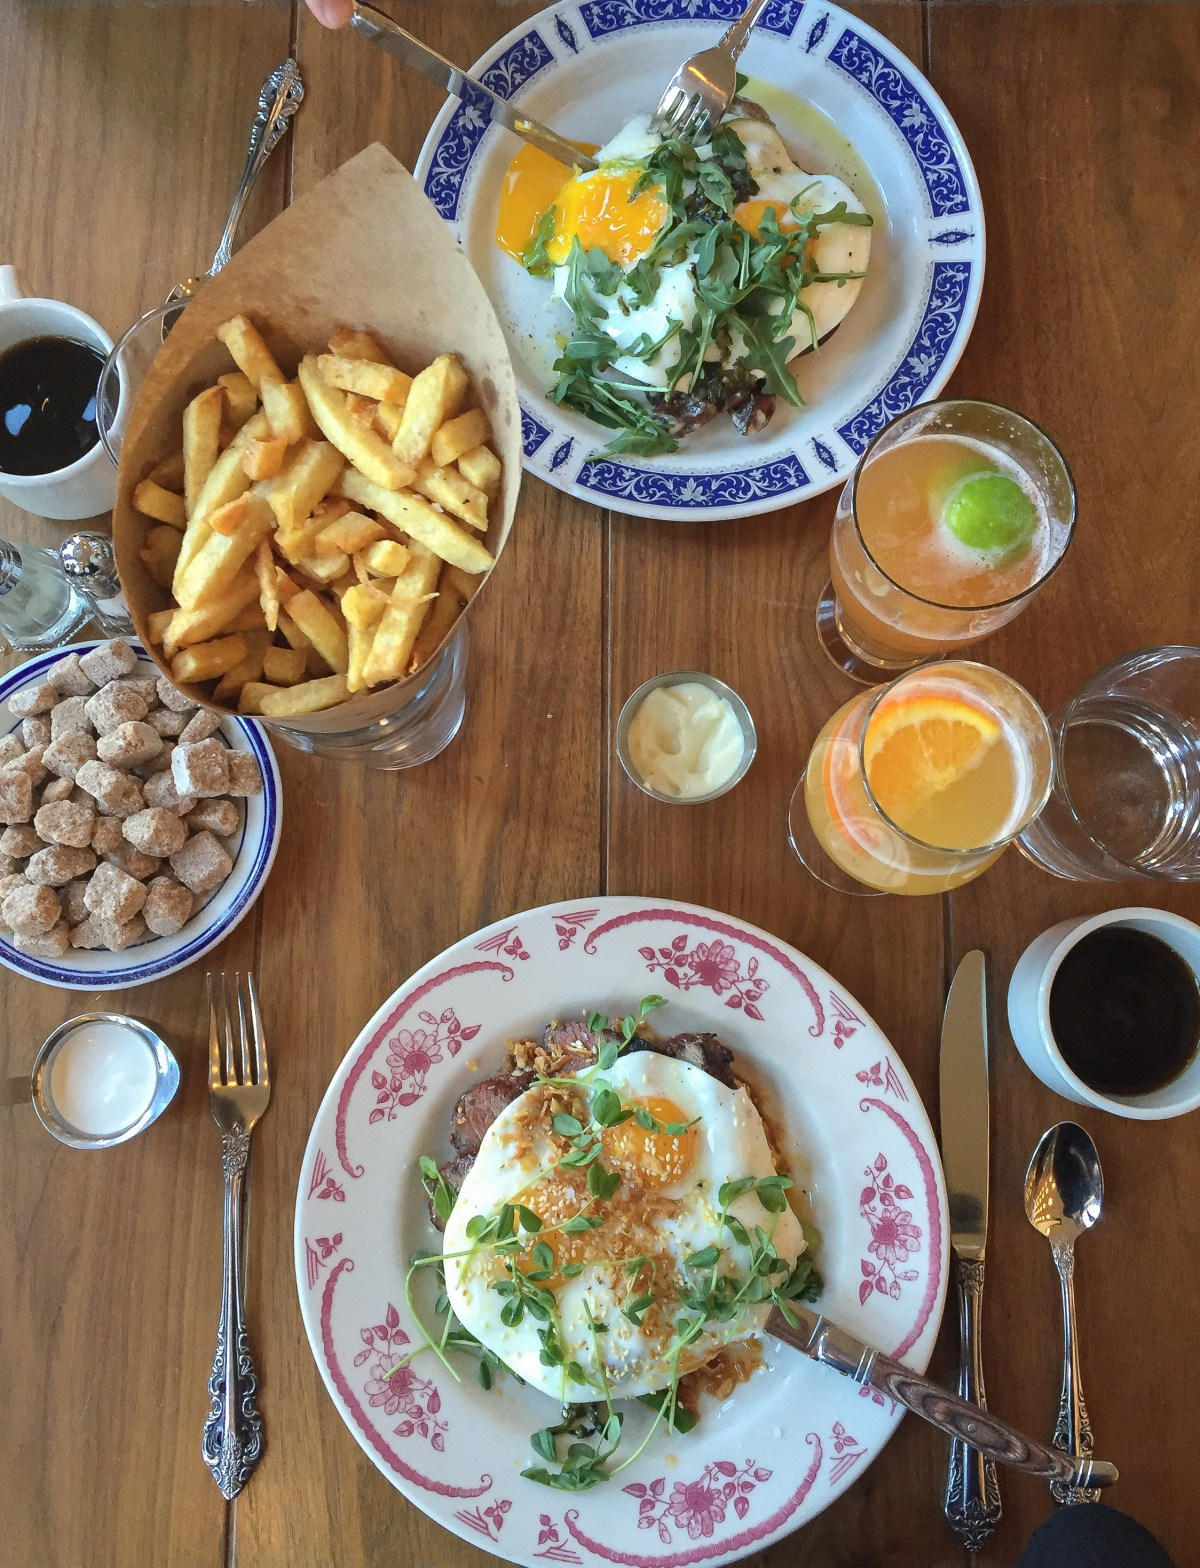 72 Hours in Chicago Brunch at the Publican